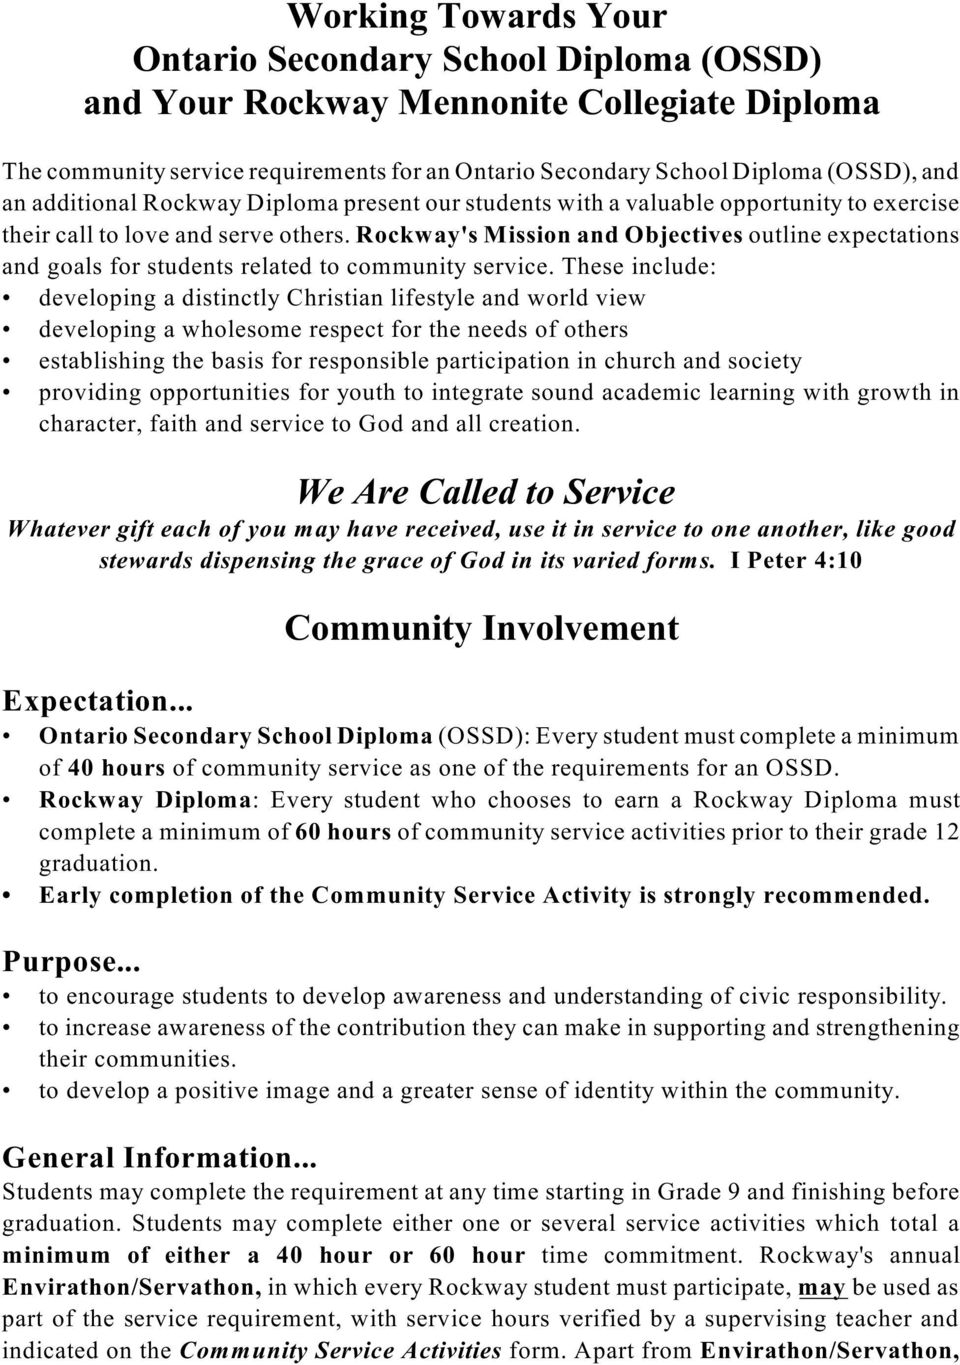 Rockway's Mission and Objectives outline expectations and goals for students related to community service.